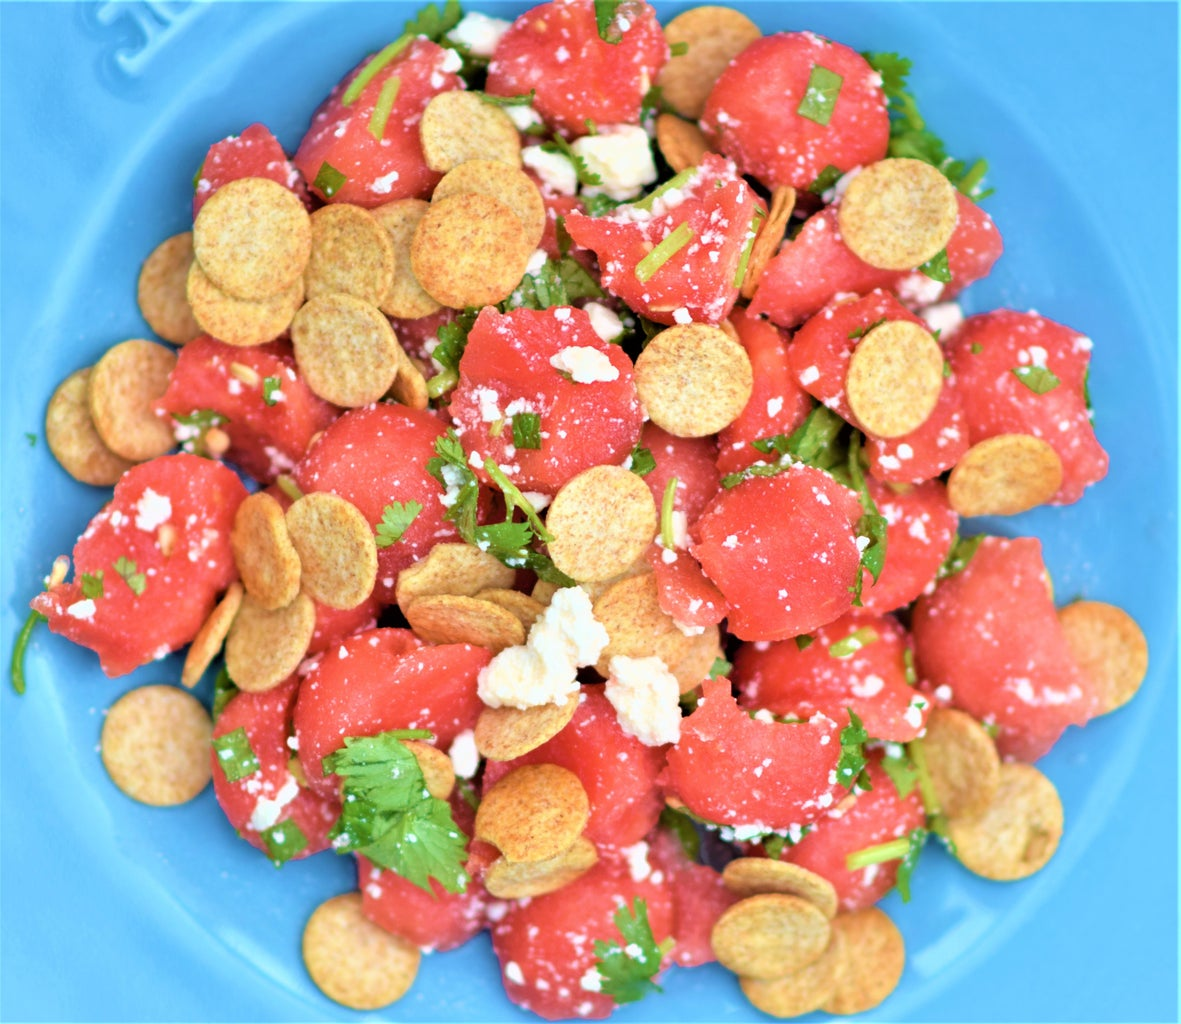 Nutrition Complete Watermelon Meal